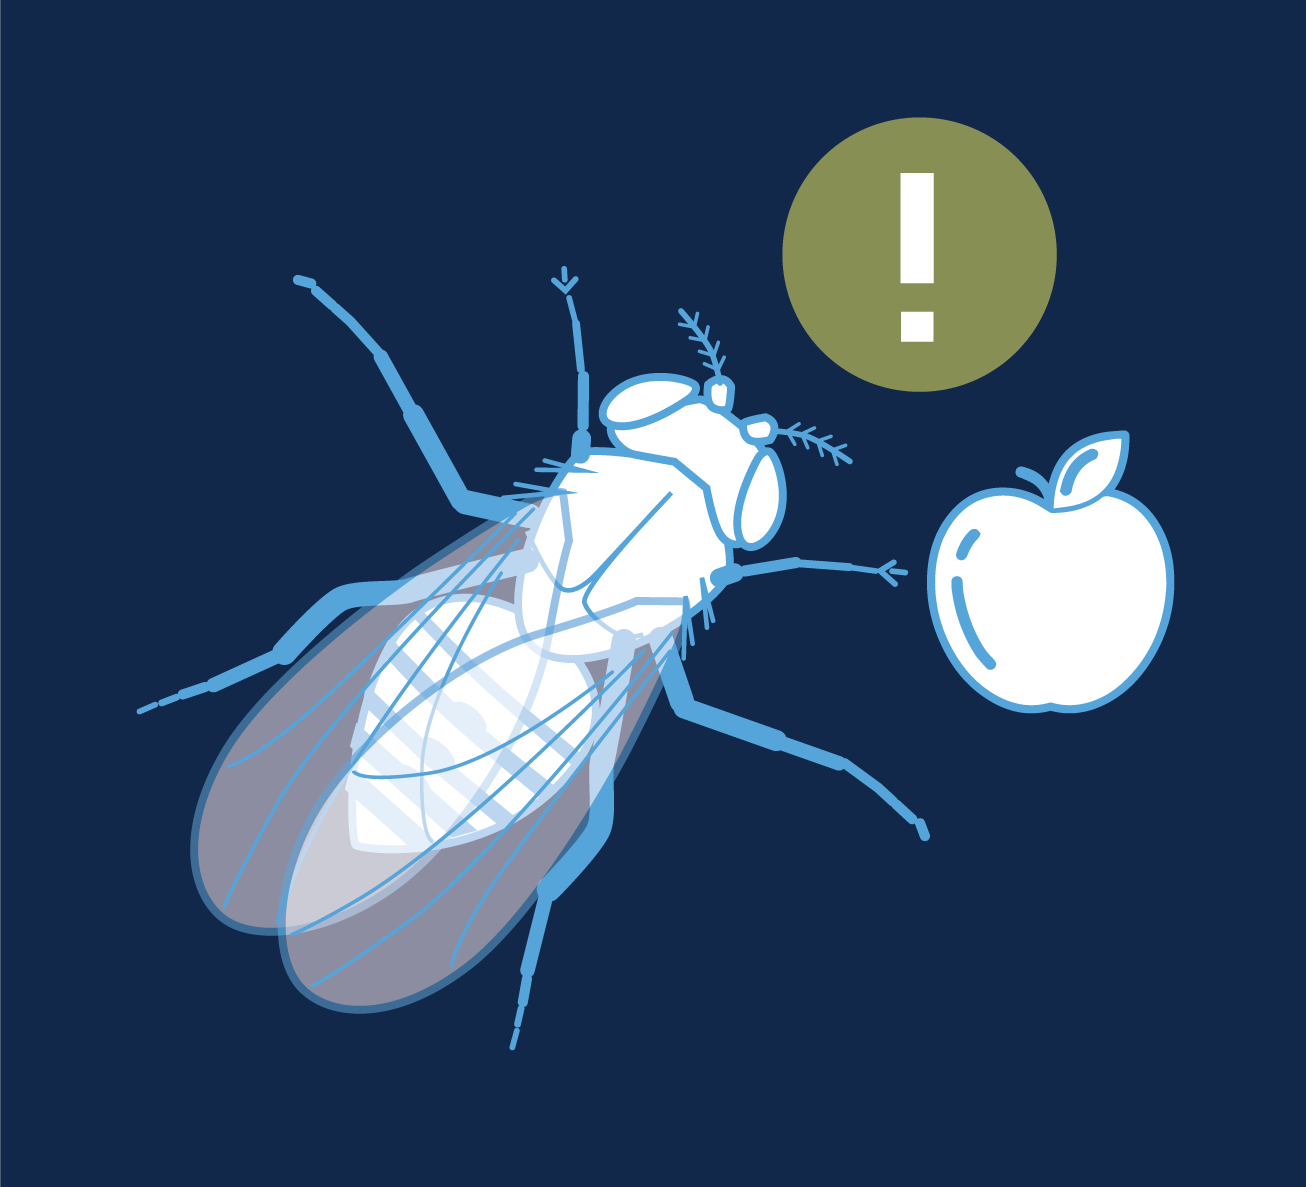 Illustration of a fruit fly